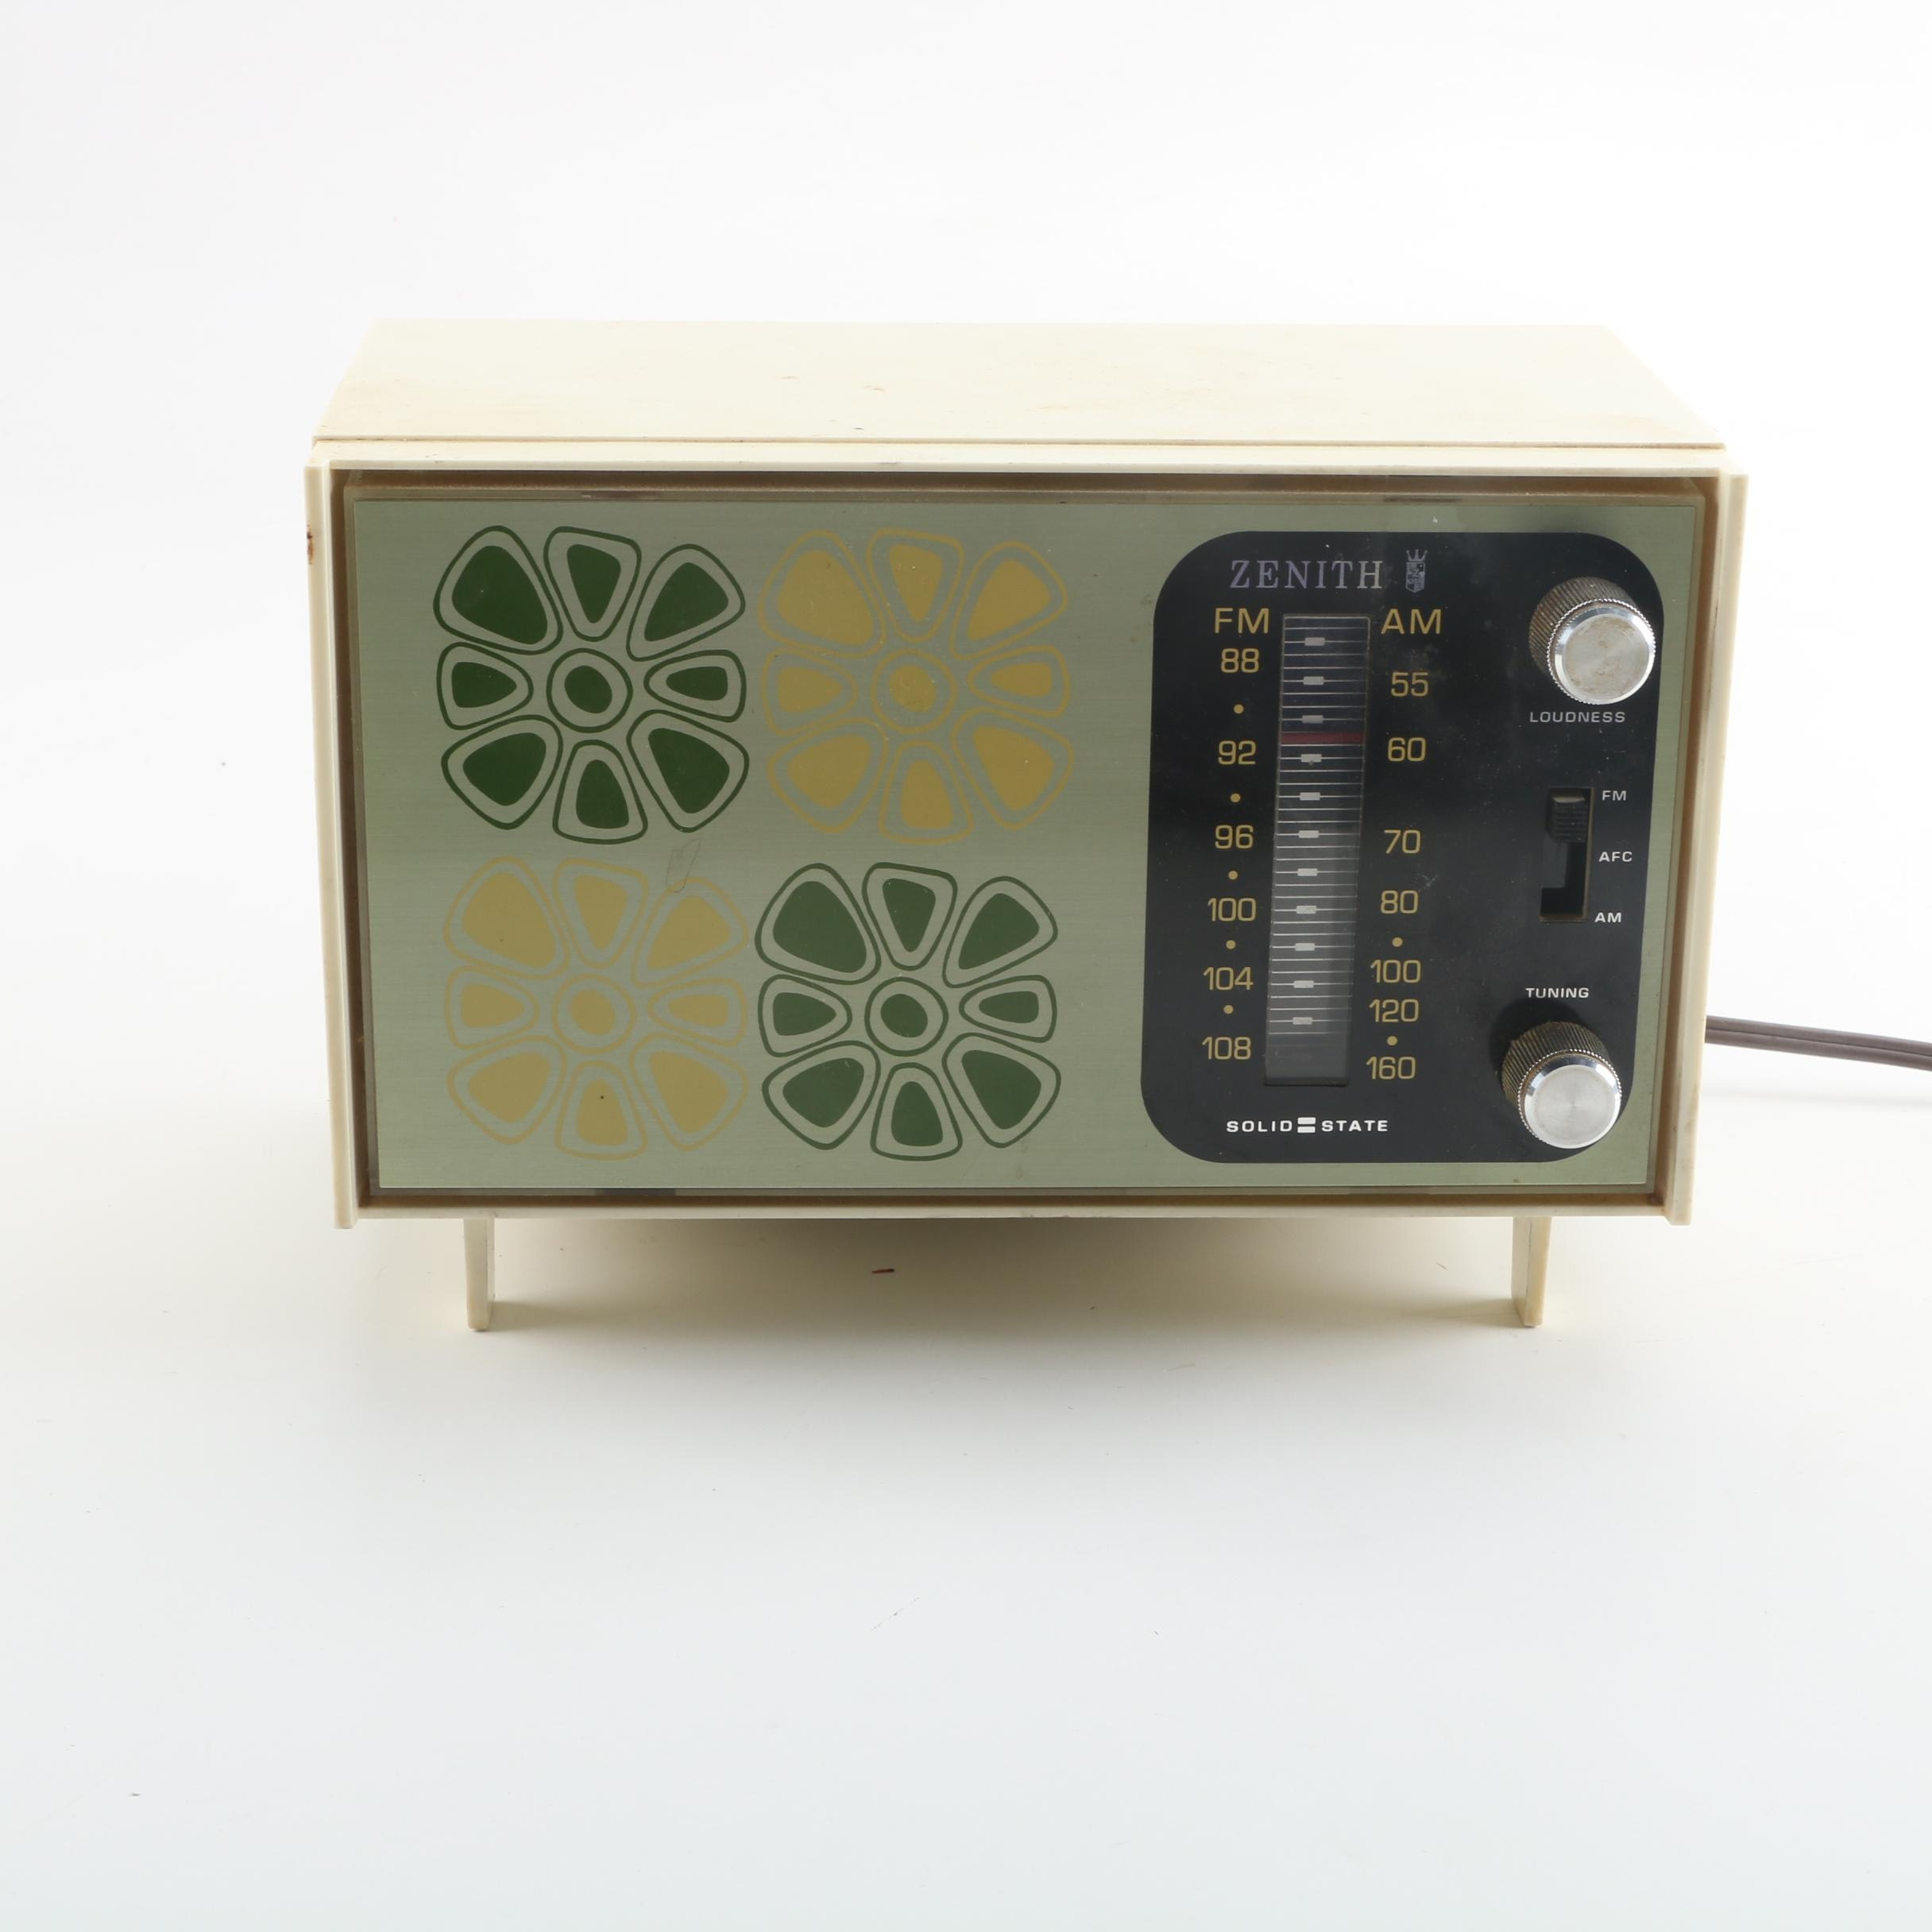 1960s Zenith Solid State Radio with Retro Floral Designs